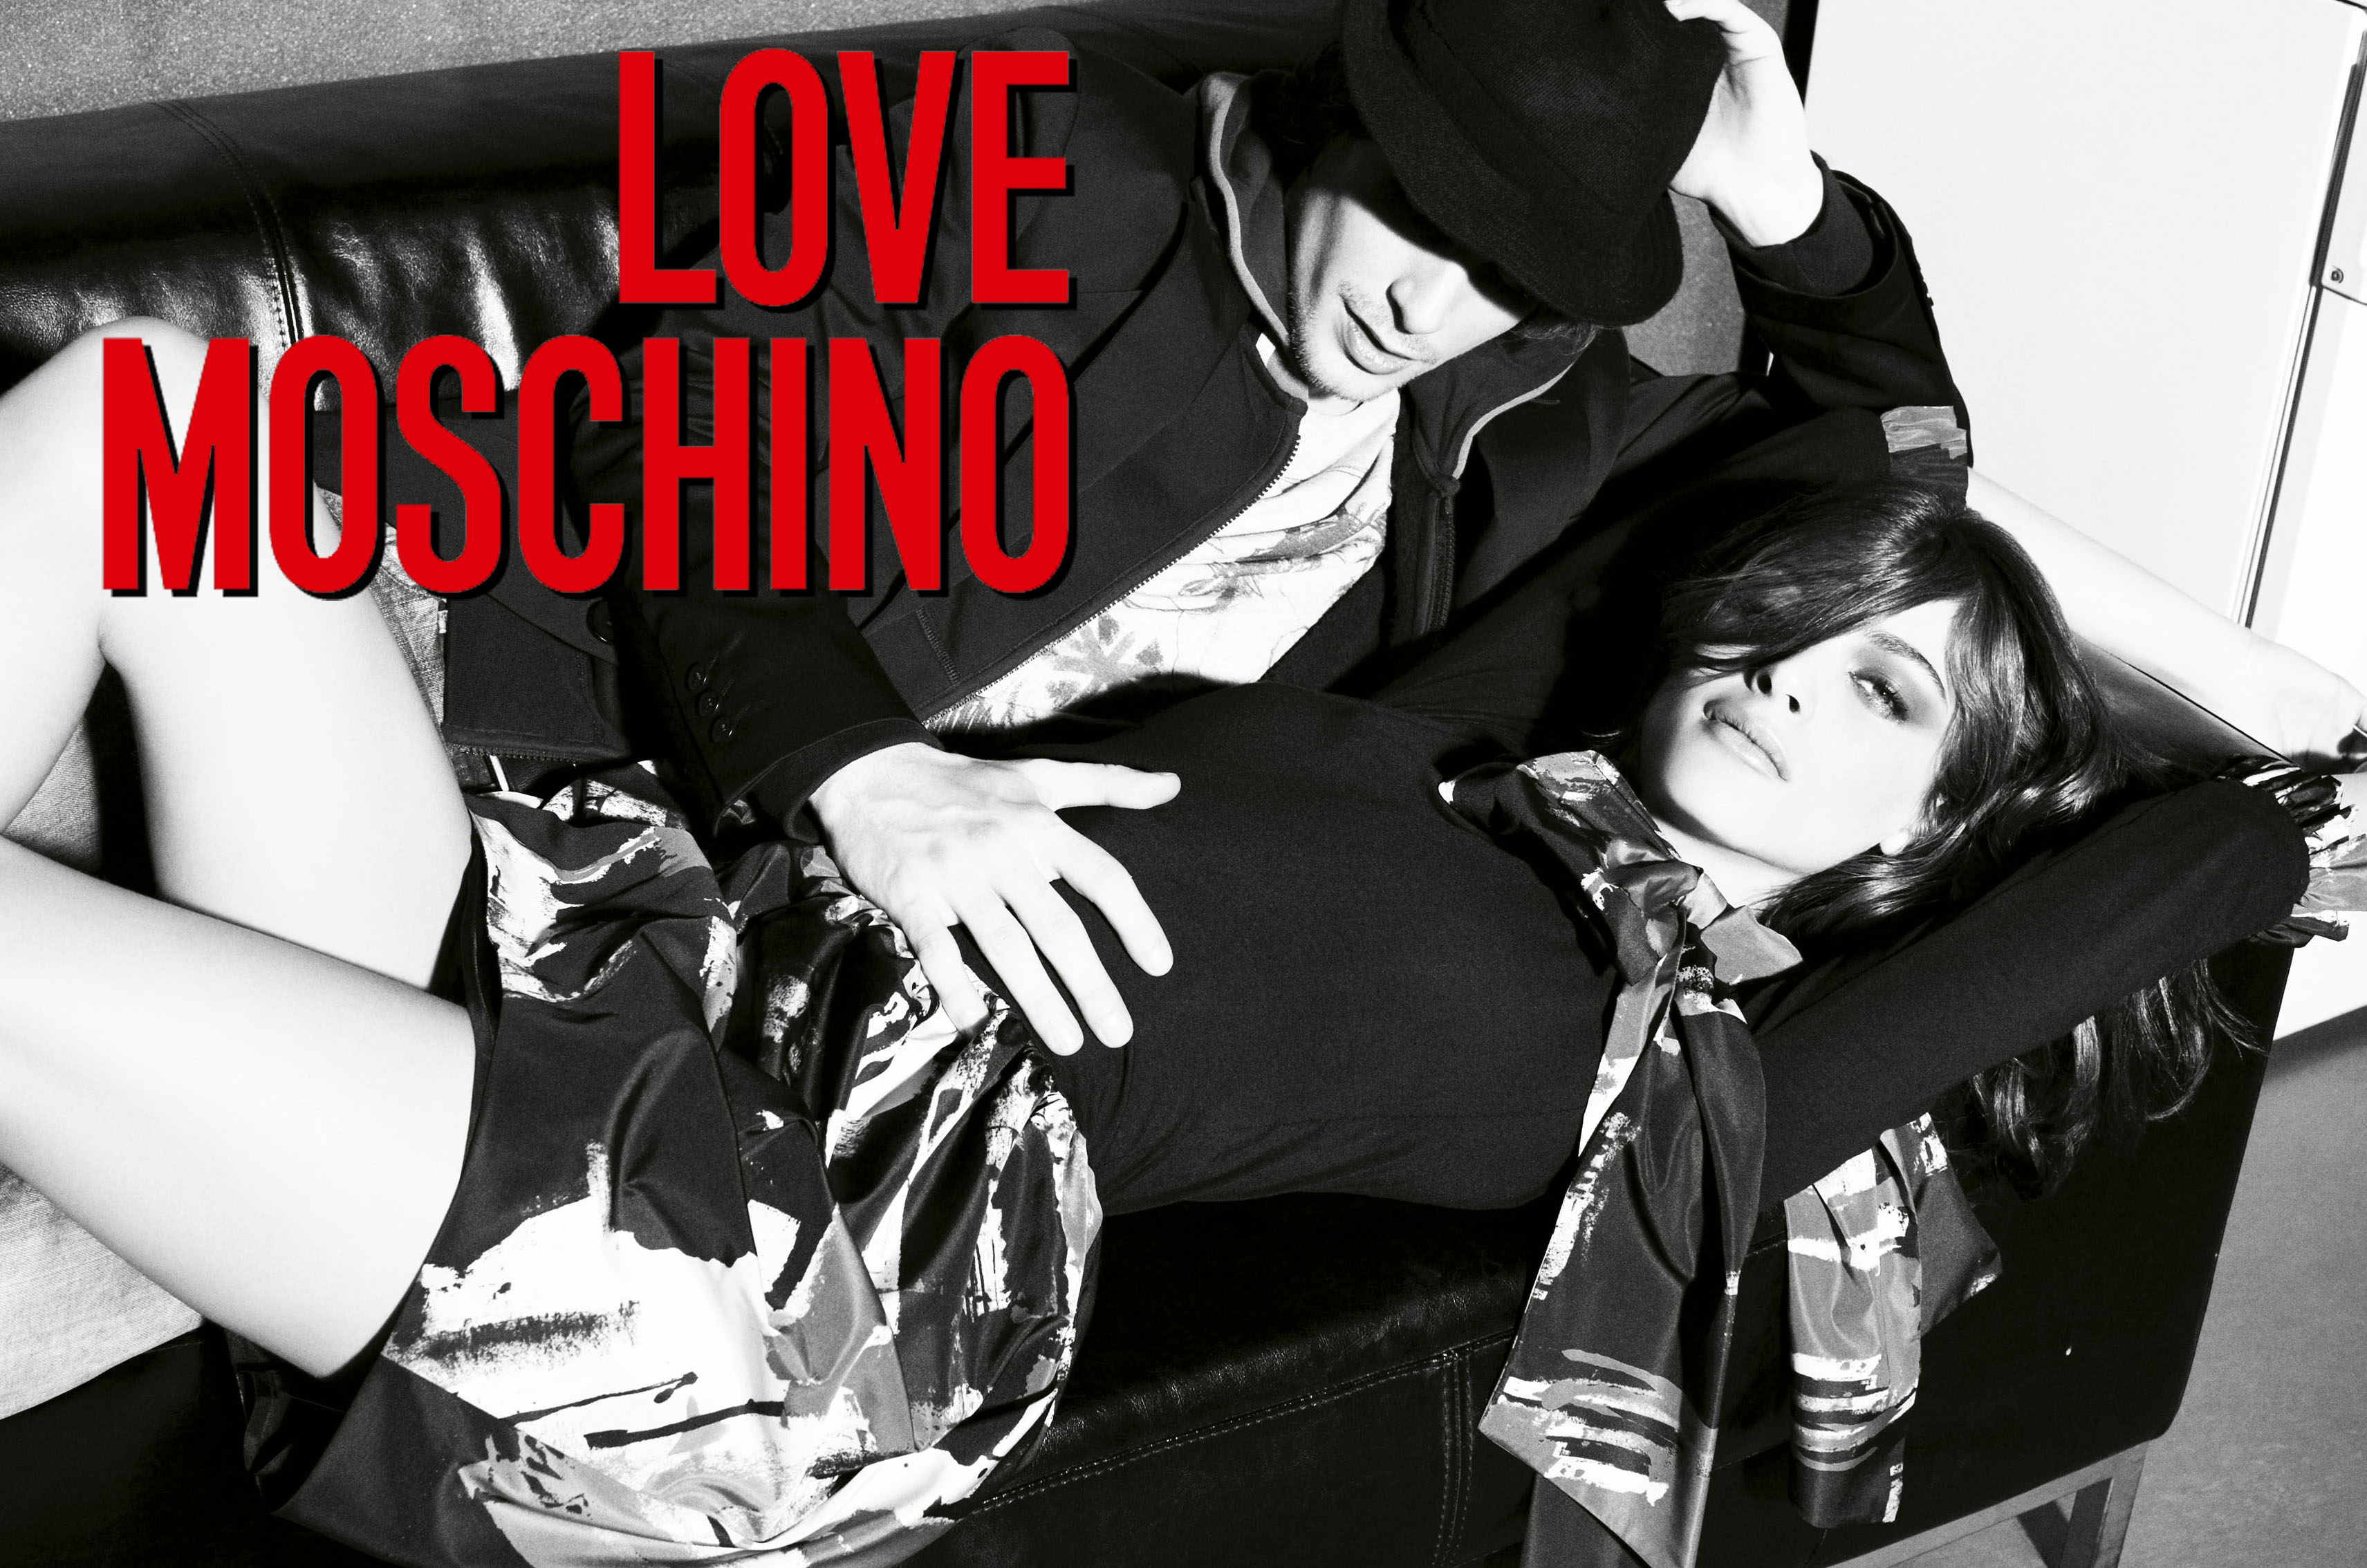 Love Moschino FW 2009 | Tom Munro | Moschino | Numerique Retouch Photo Retouching Studio